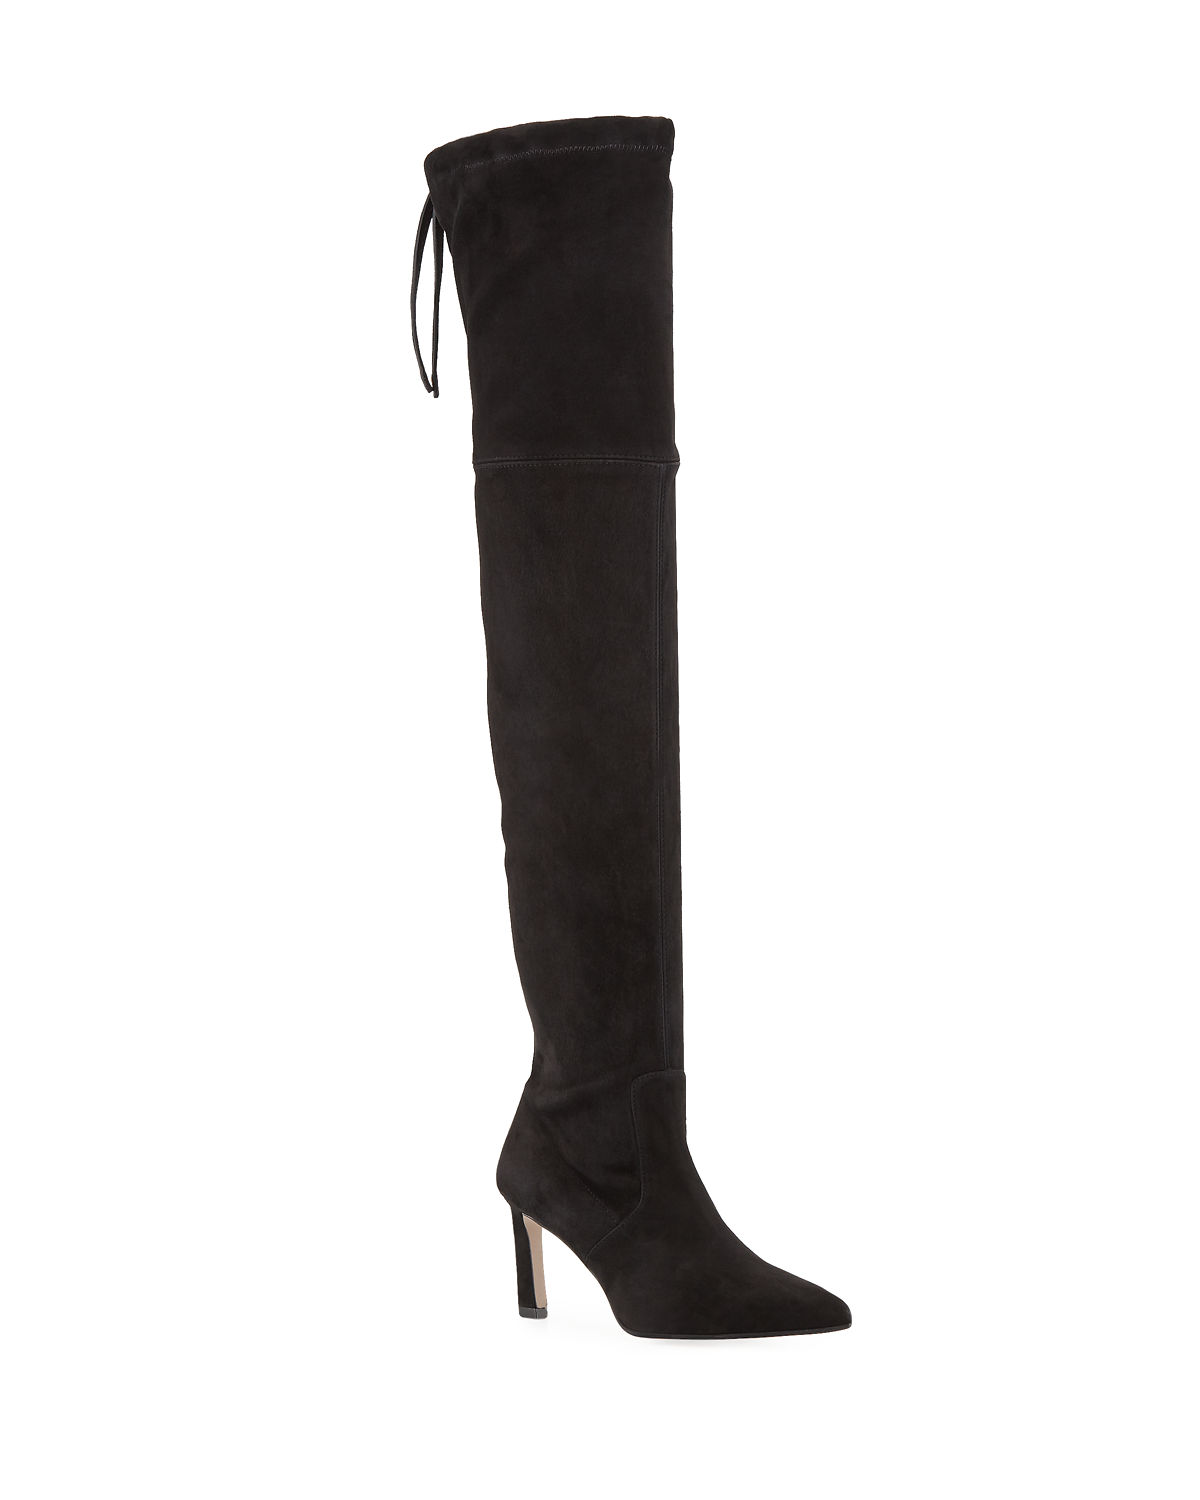 eb1eb766596 Stuart Weitzman Natalia 75mm Suede Over-The-Knee Boots